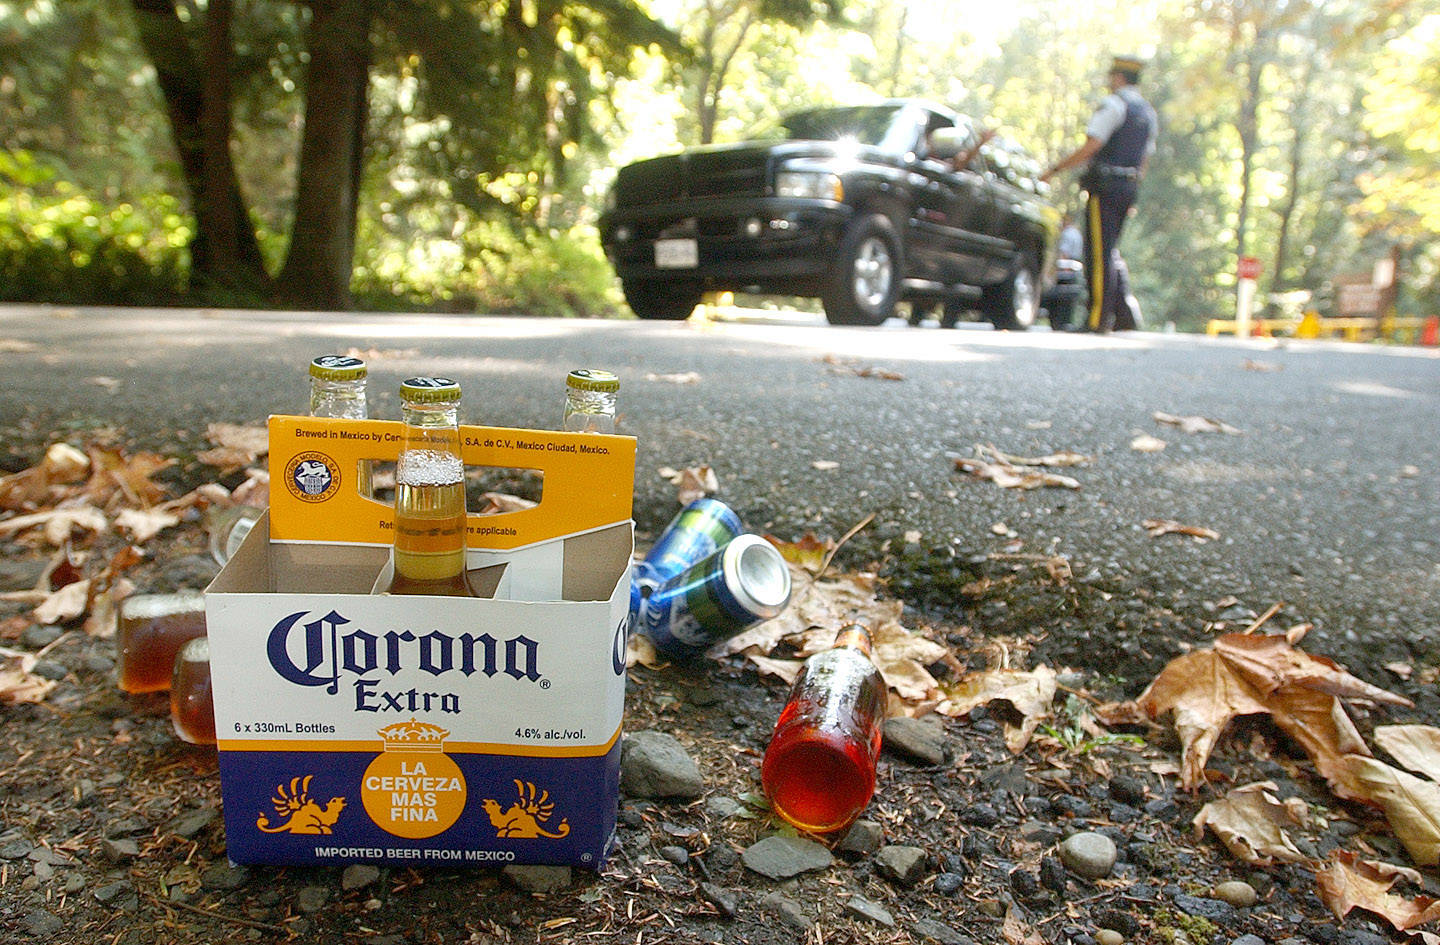 Bottles and cans of alcohol sit at the side of the road after they were seized by RCMP from folks visiting Entrance Bay in Cultus Lake on Aug. 27, 2005. (Jenna Hauck/ Progress file)